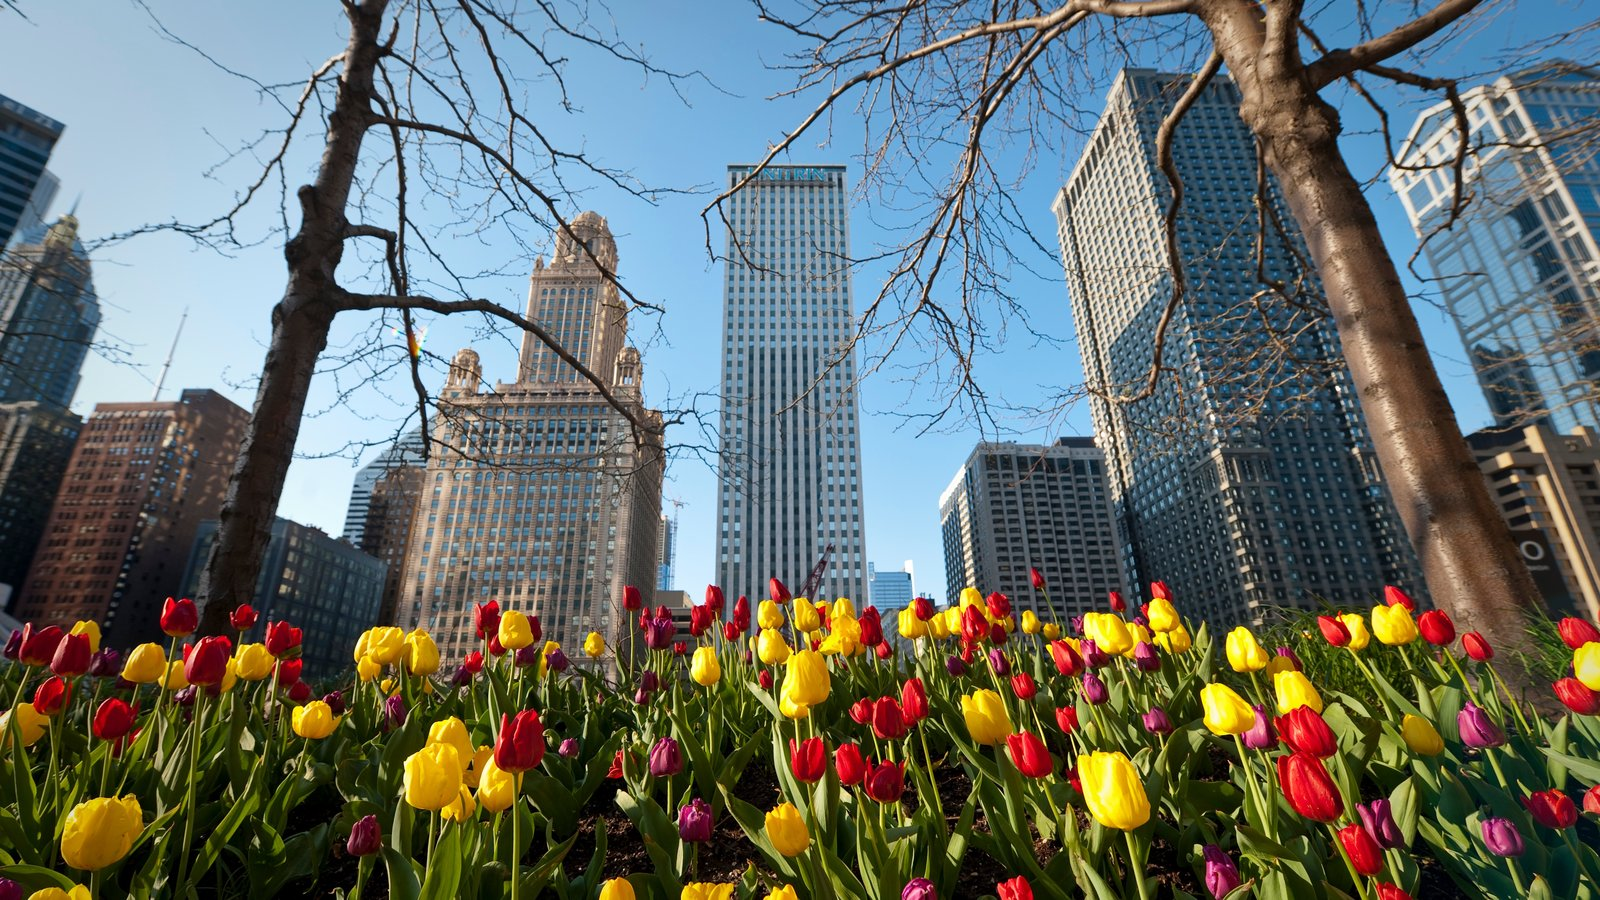 Chicago which includes modern architecture, flowers and a high rise building